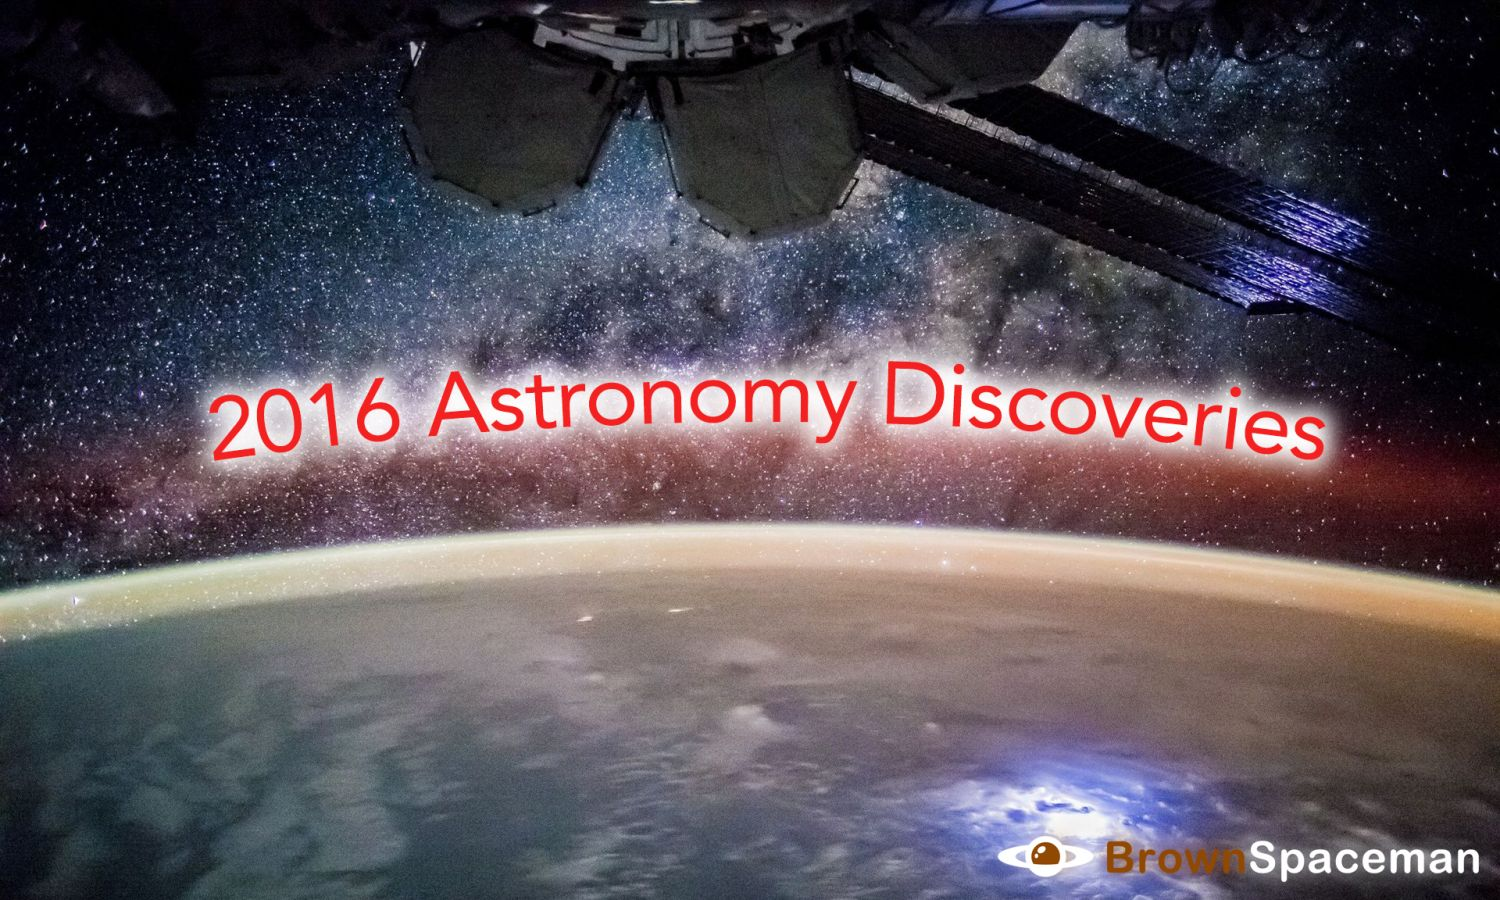 2016 Astronomy Discoveries